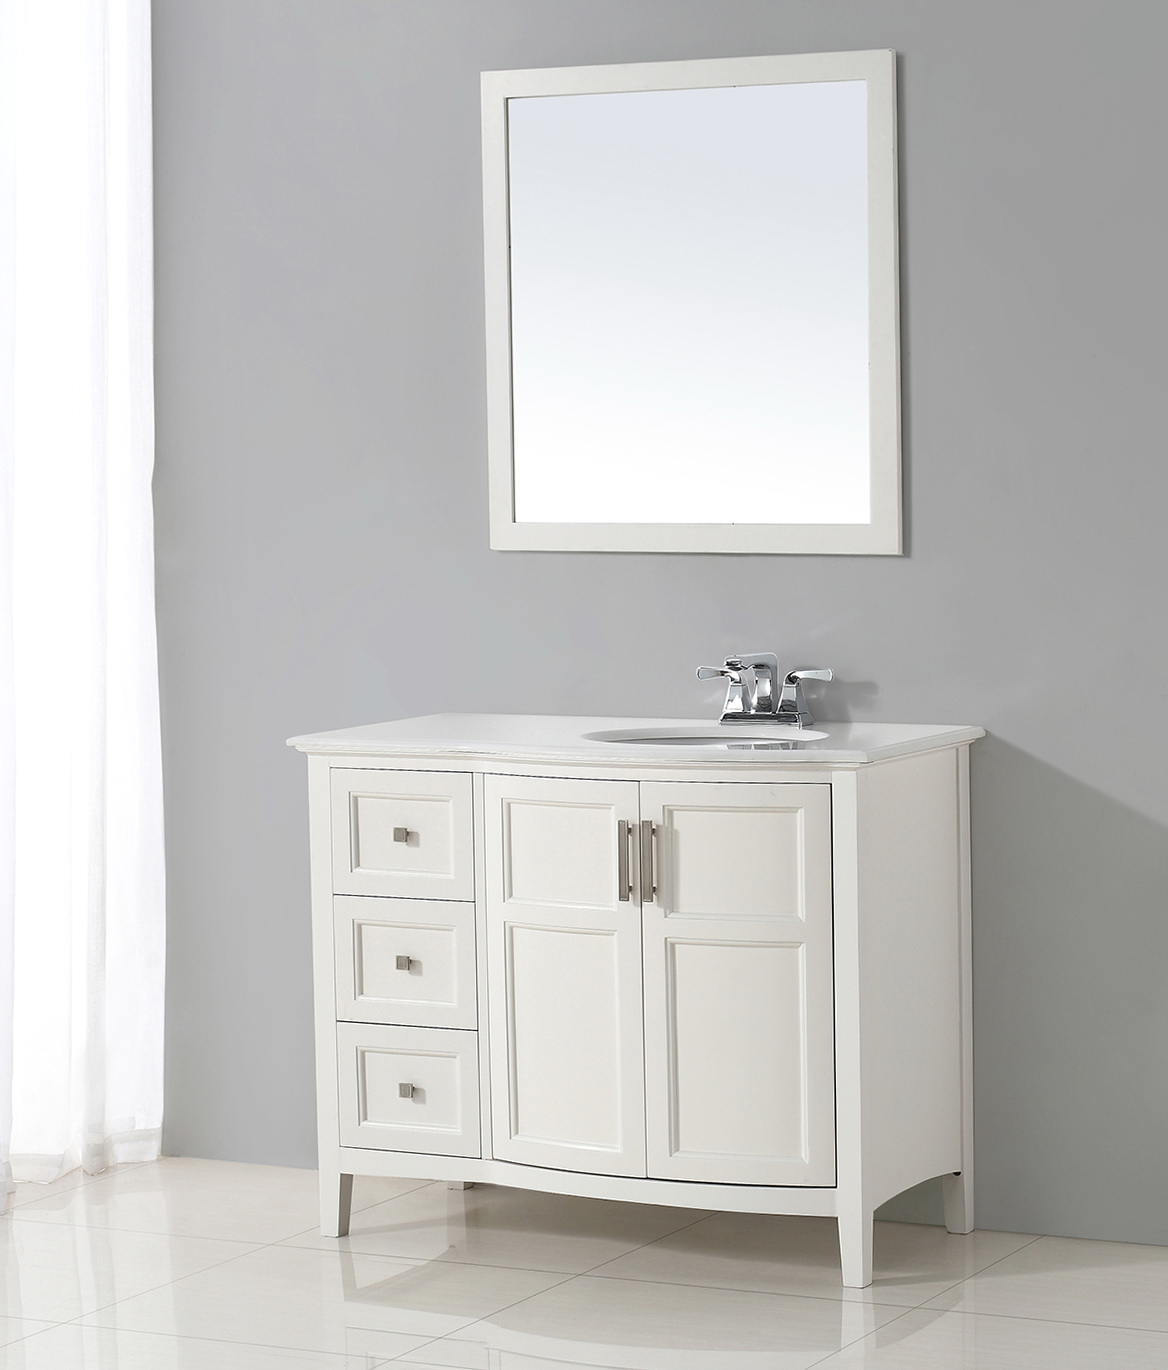 Vanities Without Tops Cheap Vanity Sets Bathroom From 42 Inch 42 Inch Bathroom Vanity Home Depot